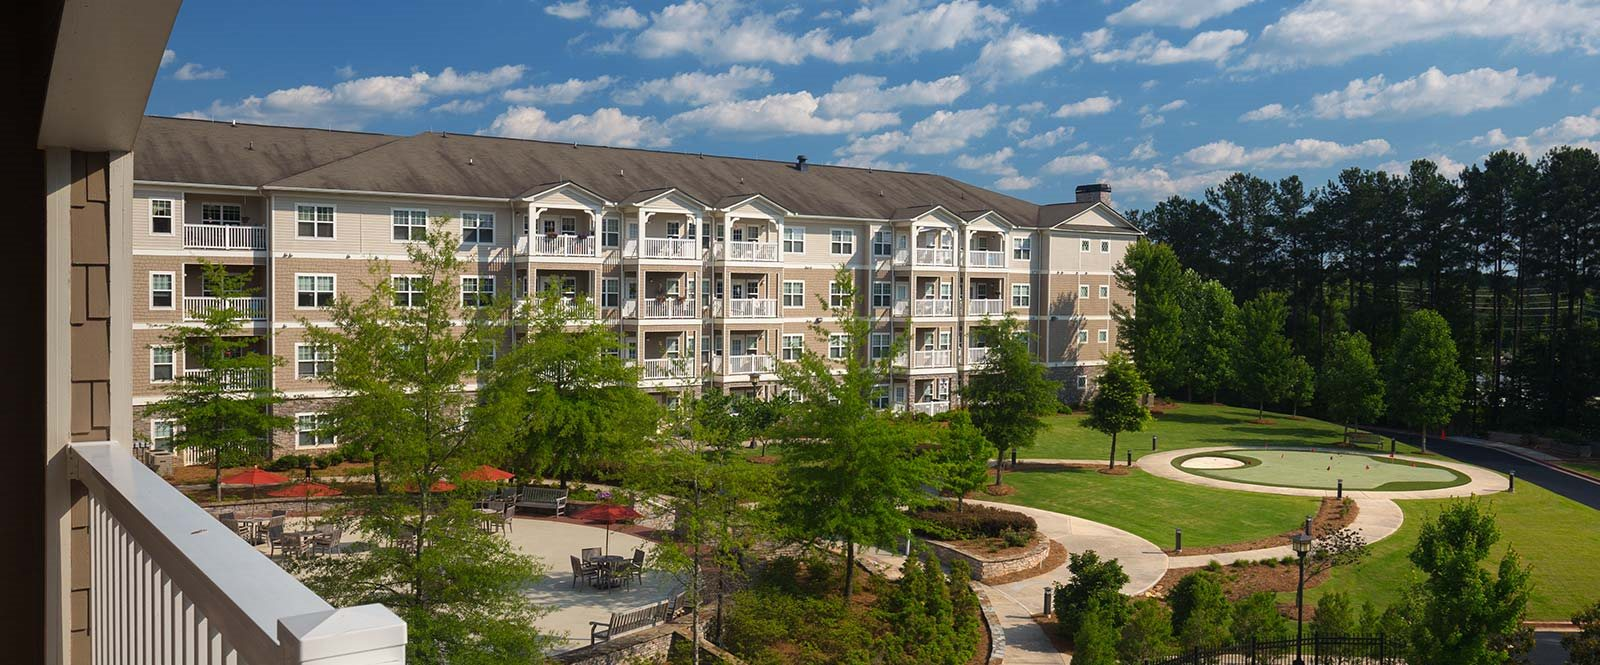 Exterior Banner Lodge at BridgeMill Luxury Senior Living Community Canton Georgia